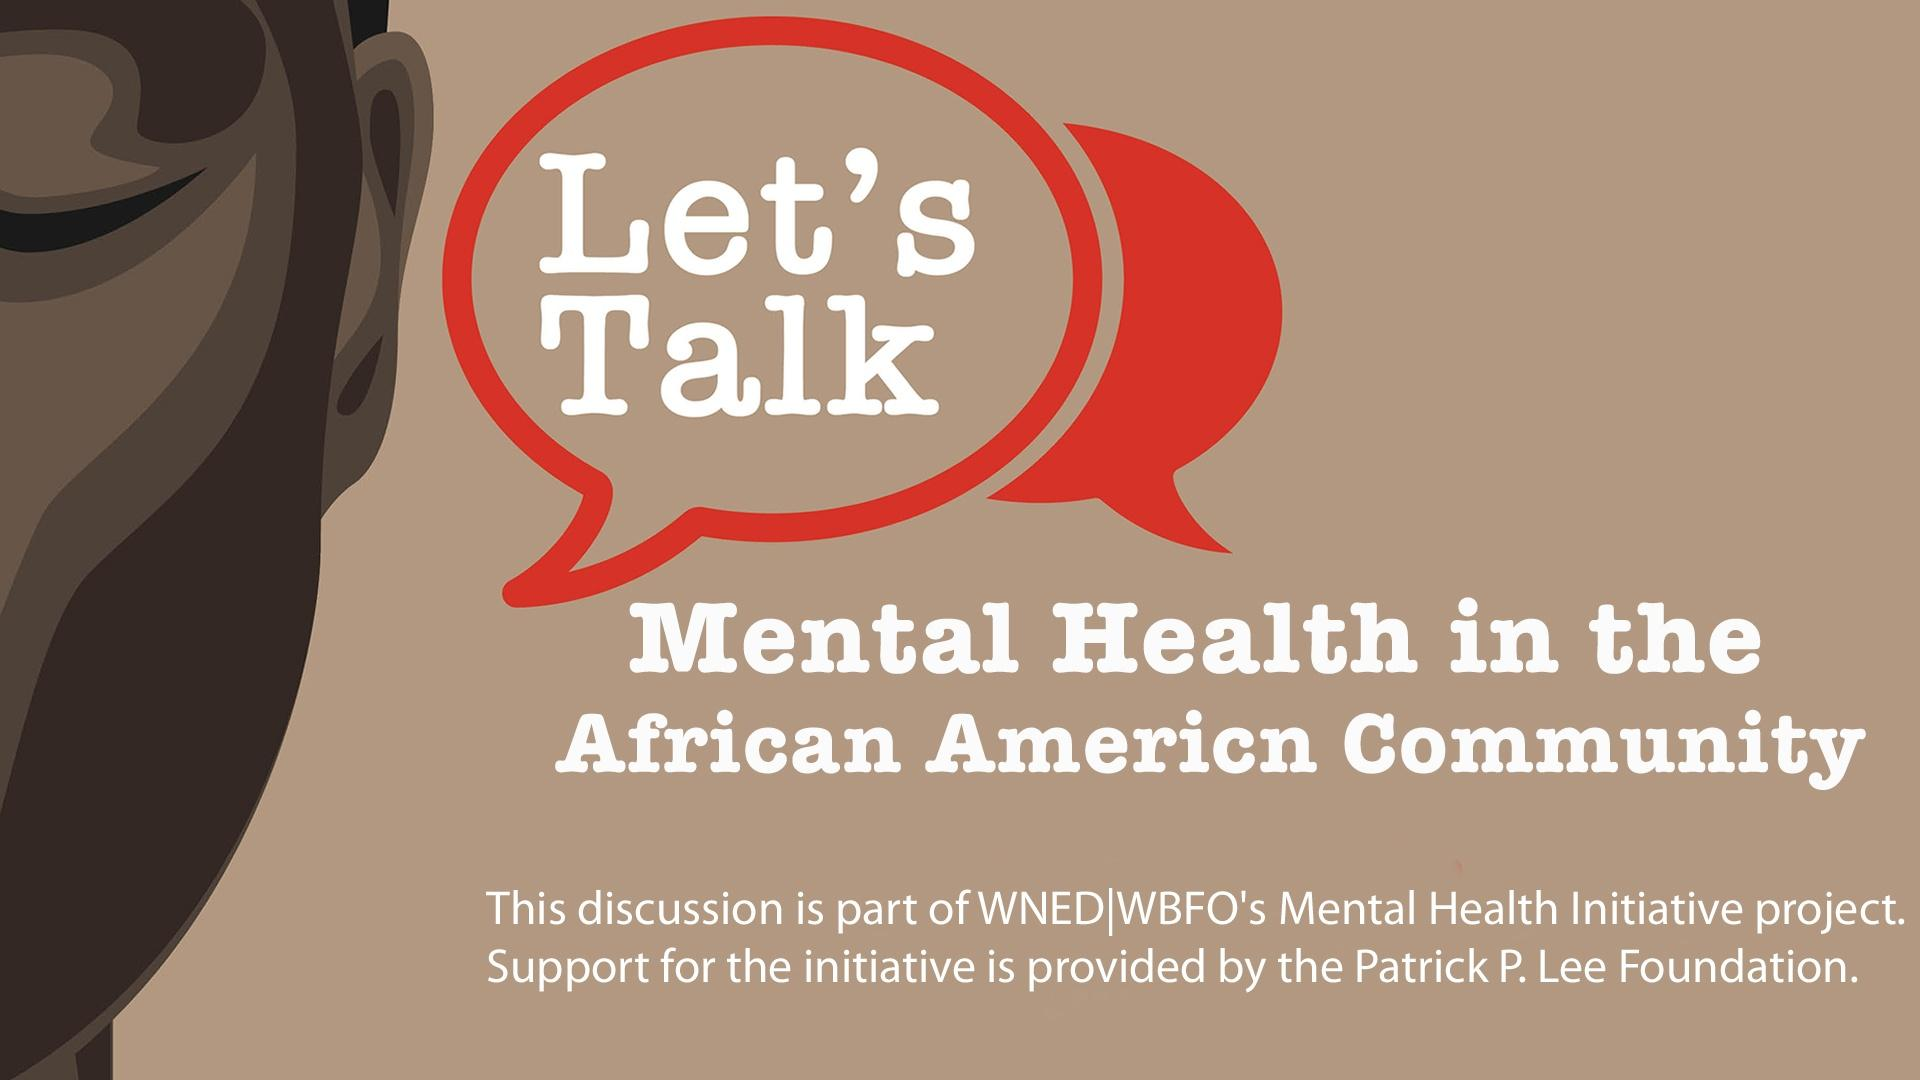 Let's Talk Mental Health In the African American Community